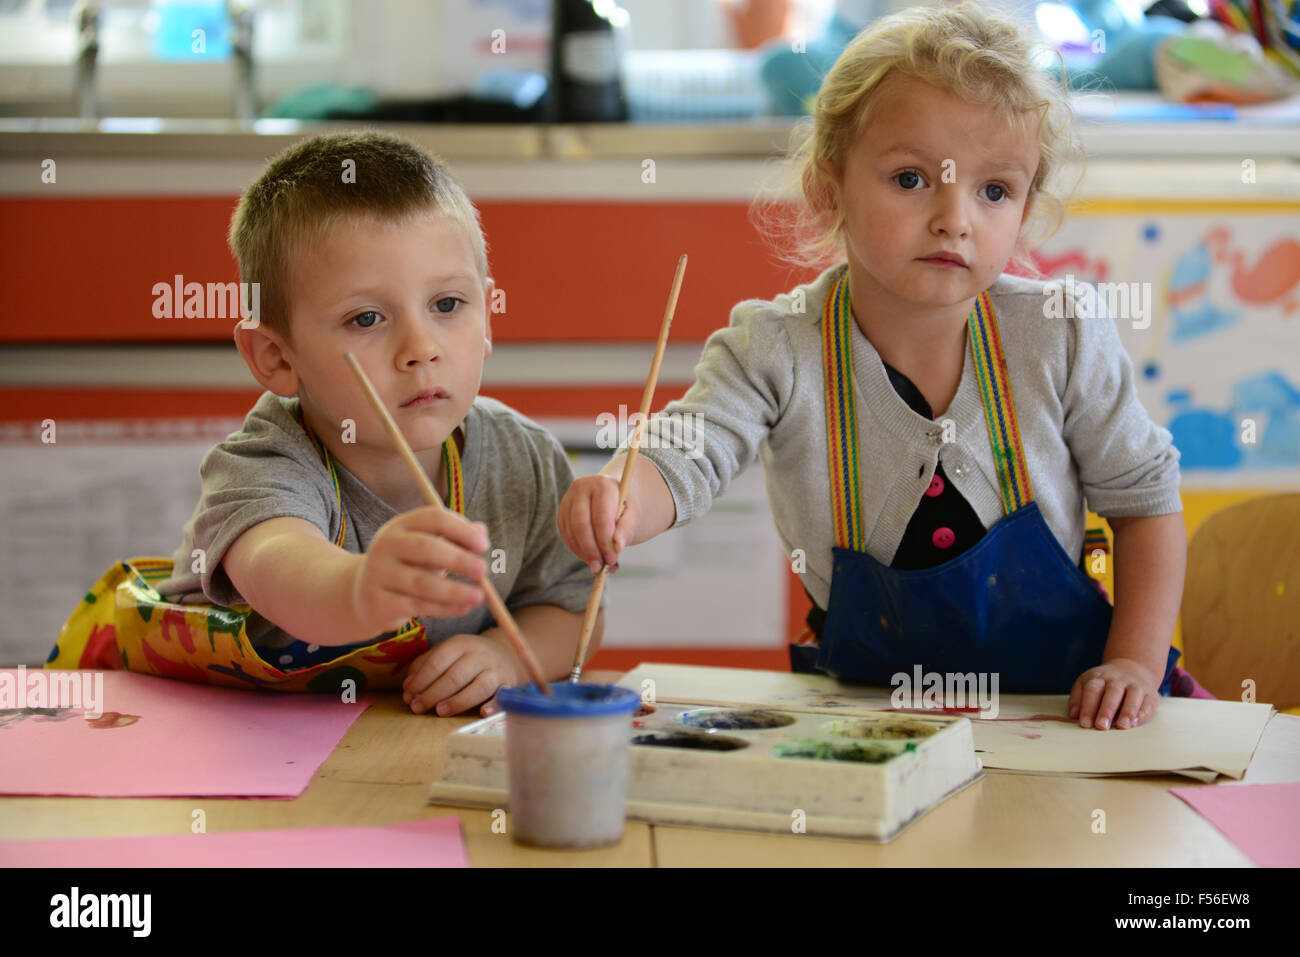 A little girl & boy painting at nursery school. Stock Photo